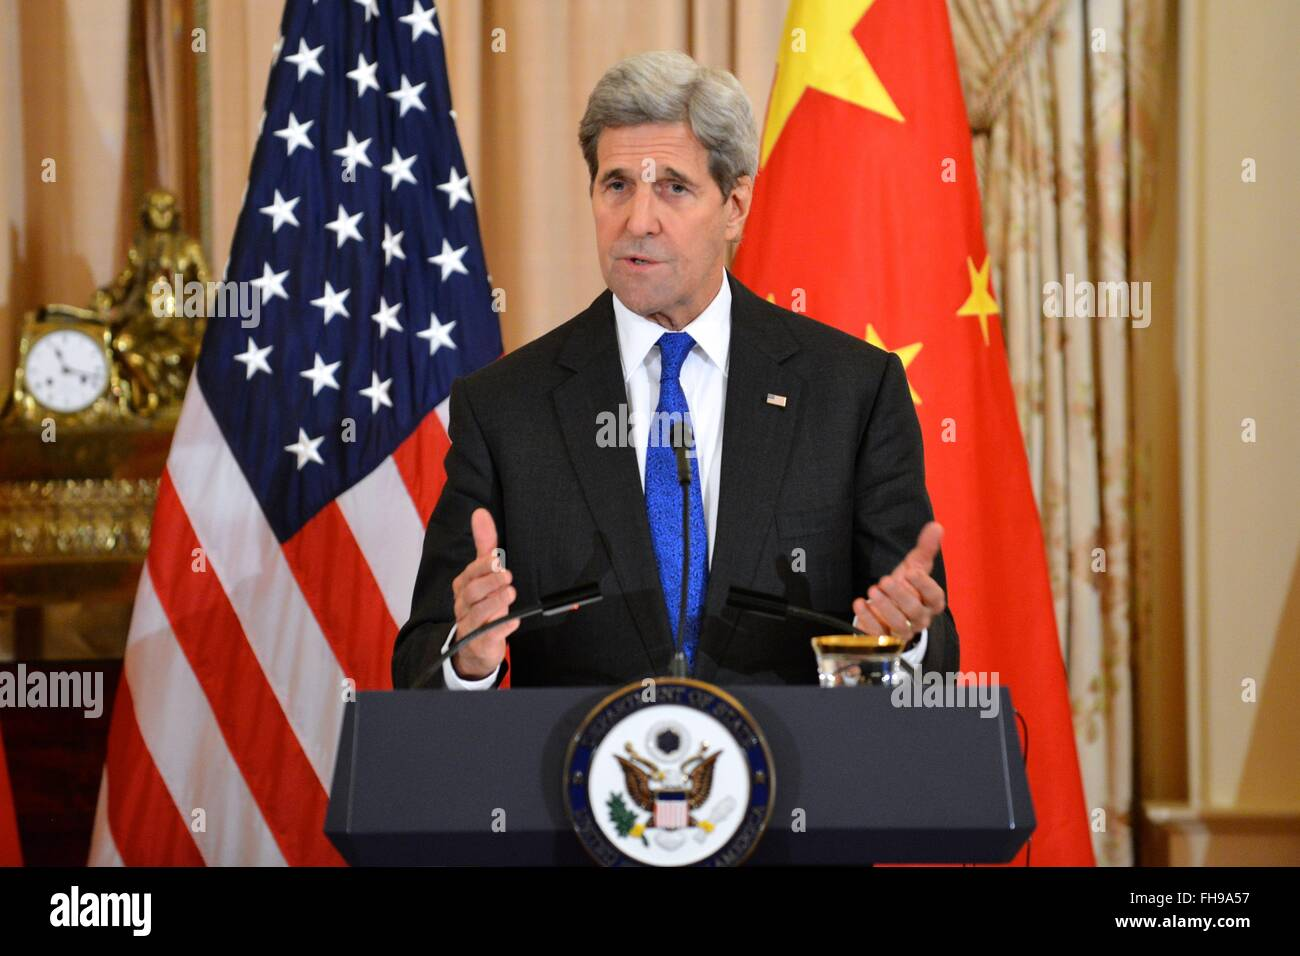 U.S. Secretary of State John Kerry during a joint news conference with Chinese Foreign Minister Wang Yi at the Department - Stock Image